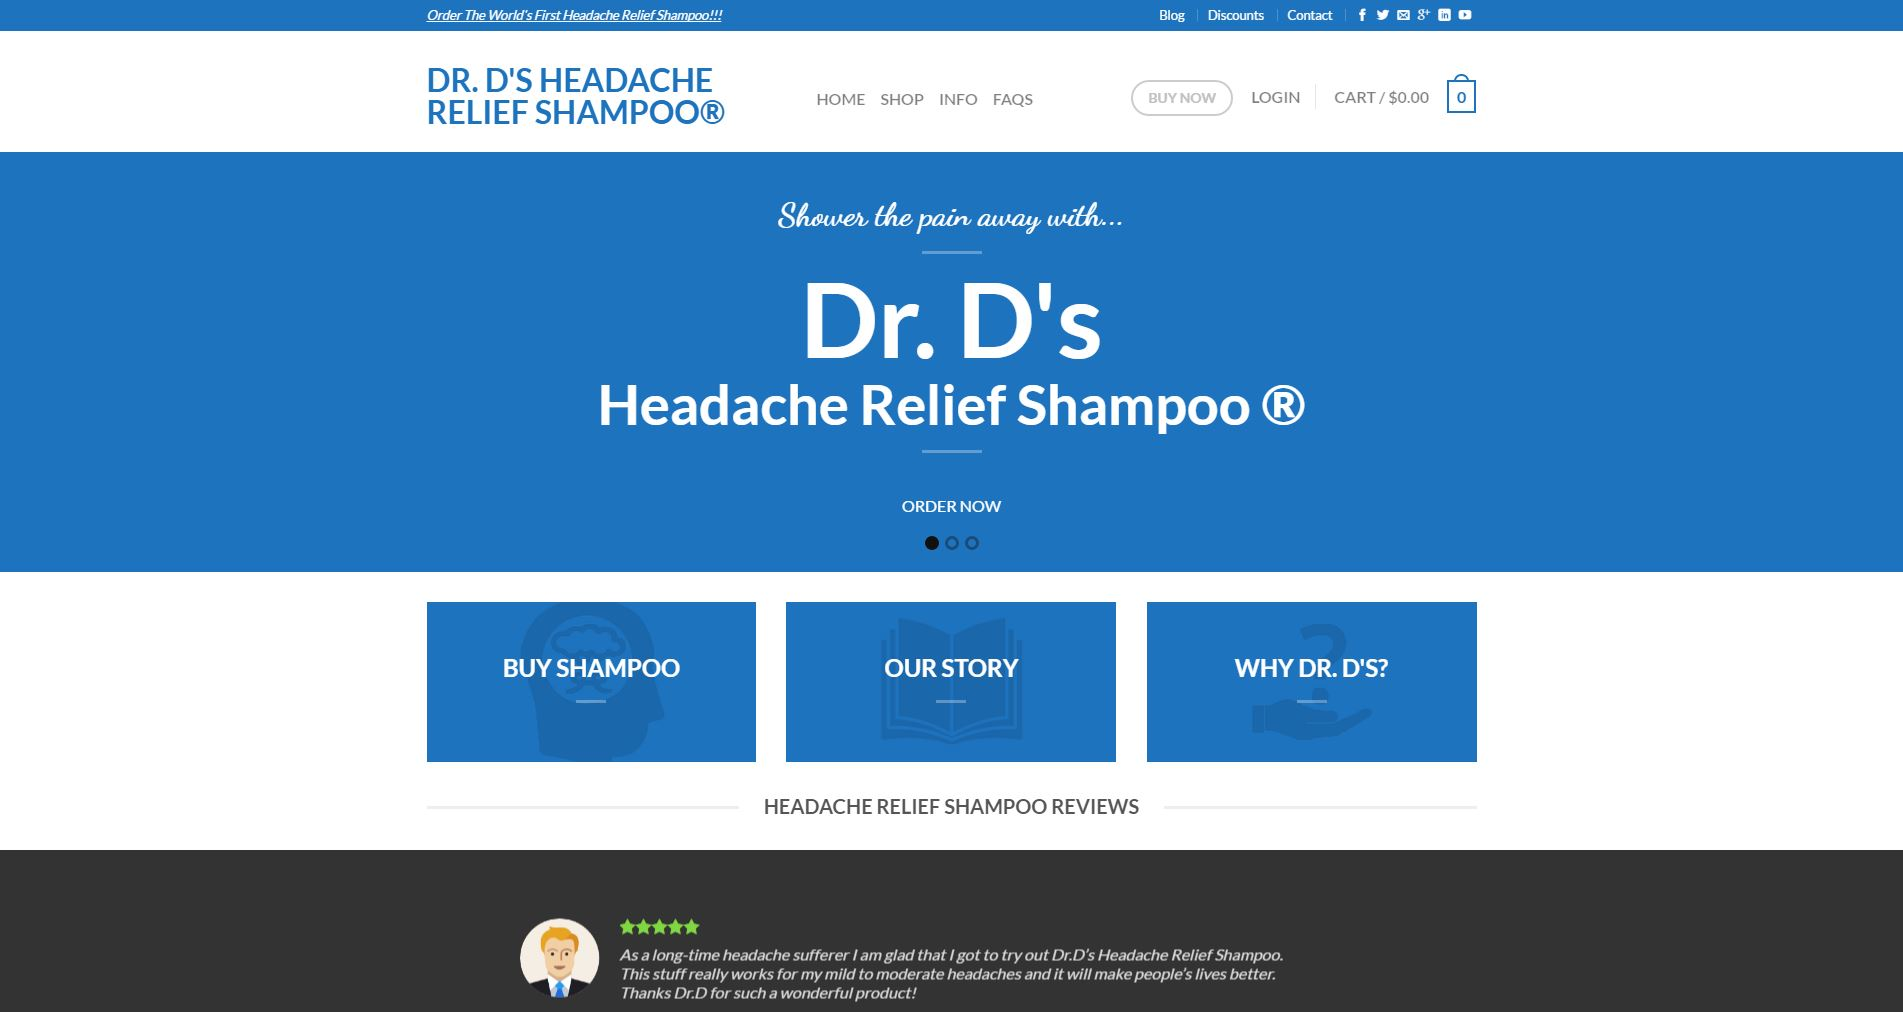 Medical E-commerce Website Design drd